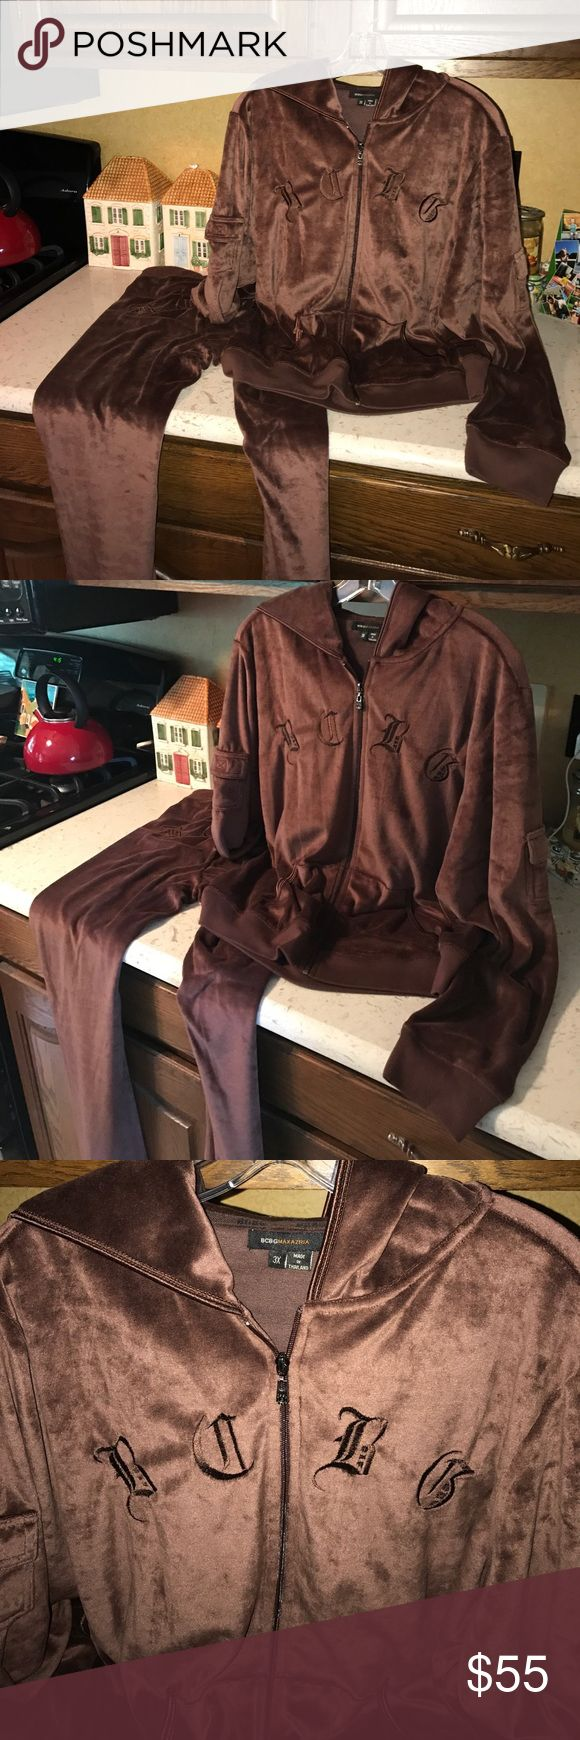 BCBG Track suit - Brown 3X - 2 pieces NWOT 2 piece Velour track suit - BCBG Max Azria brand - new without tags, never worn - women's size 3x - brown (see my other listings for the exact same but NWT in a light tan color) Hoodie zip up jacket drawstring pants BCBGMaxAzria Other